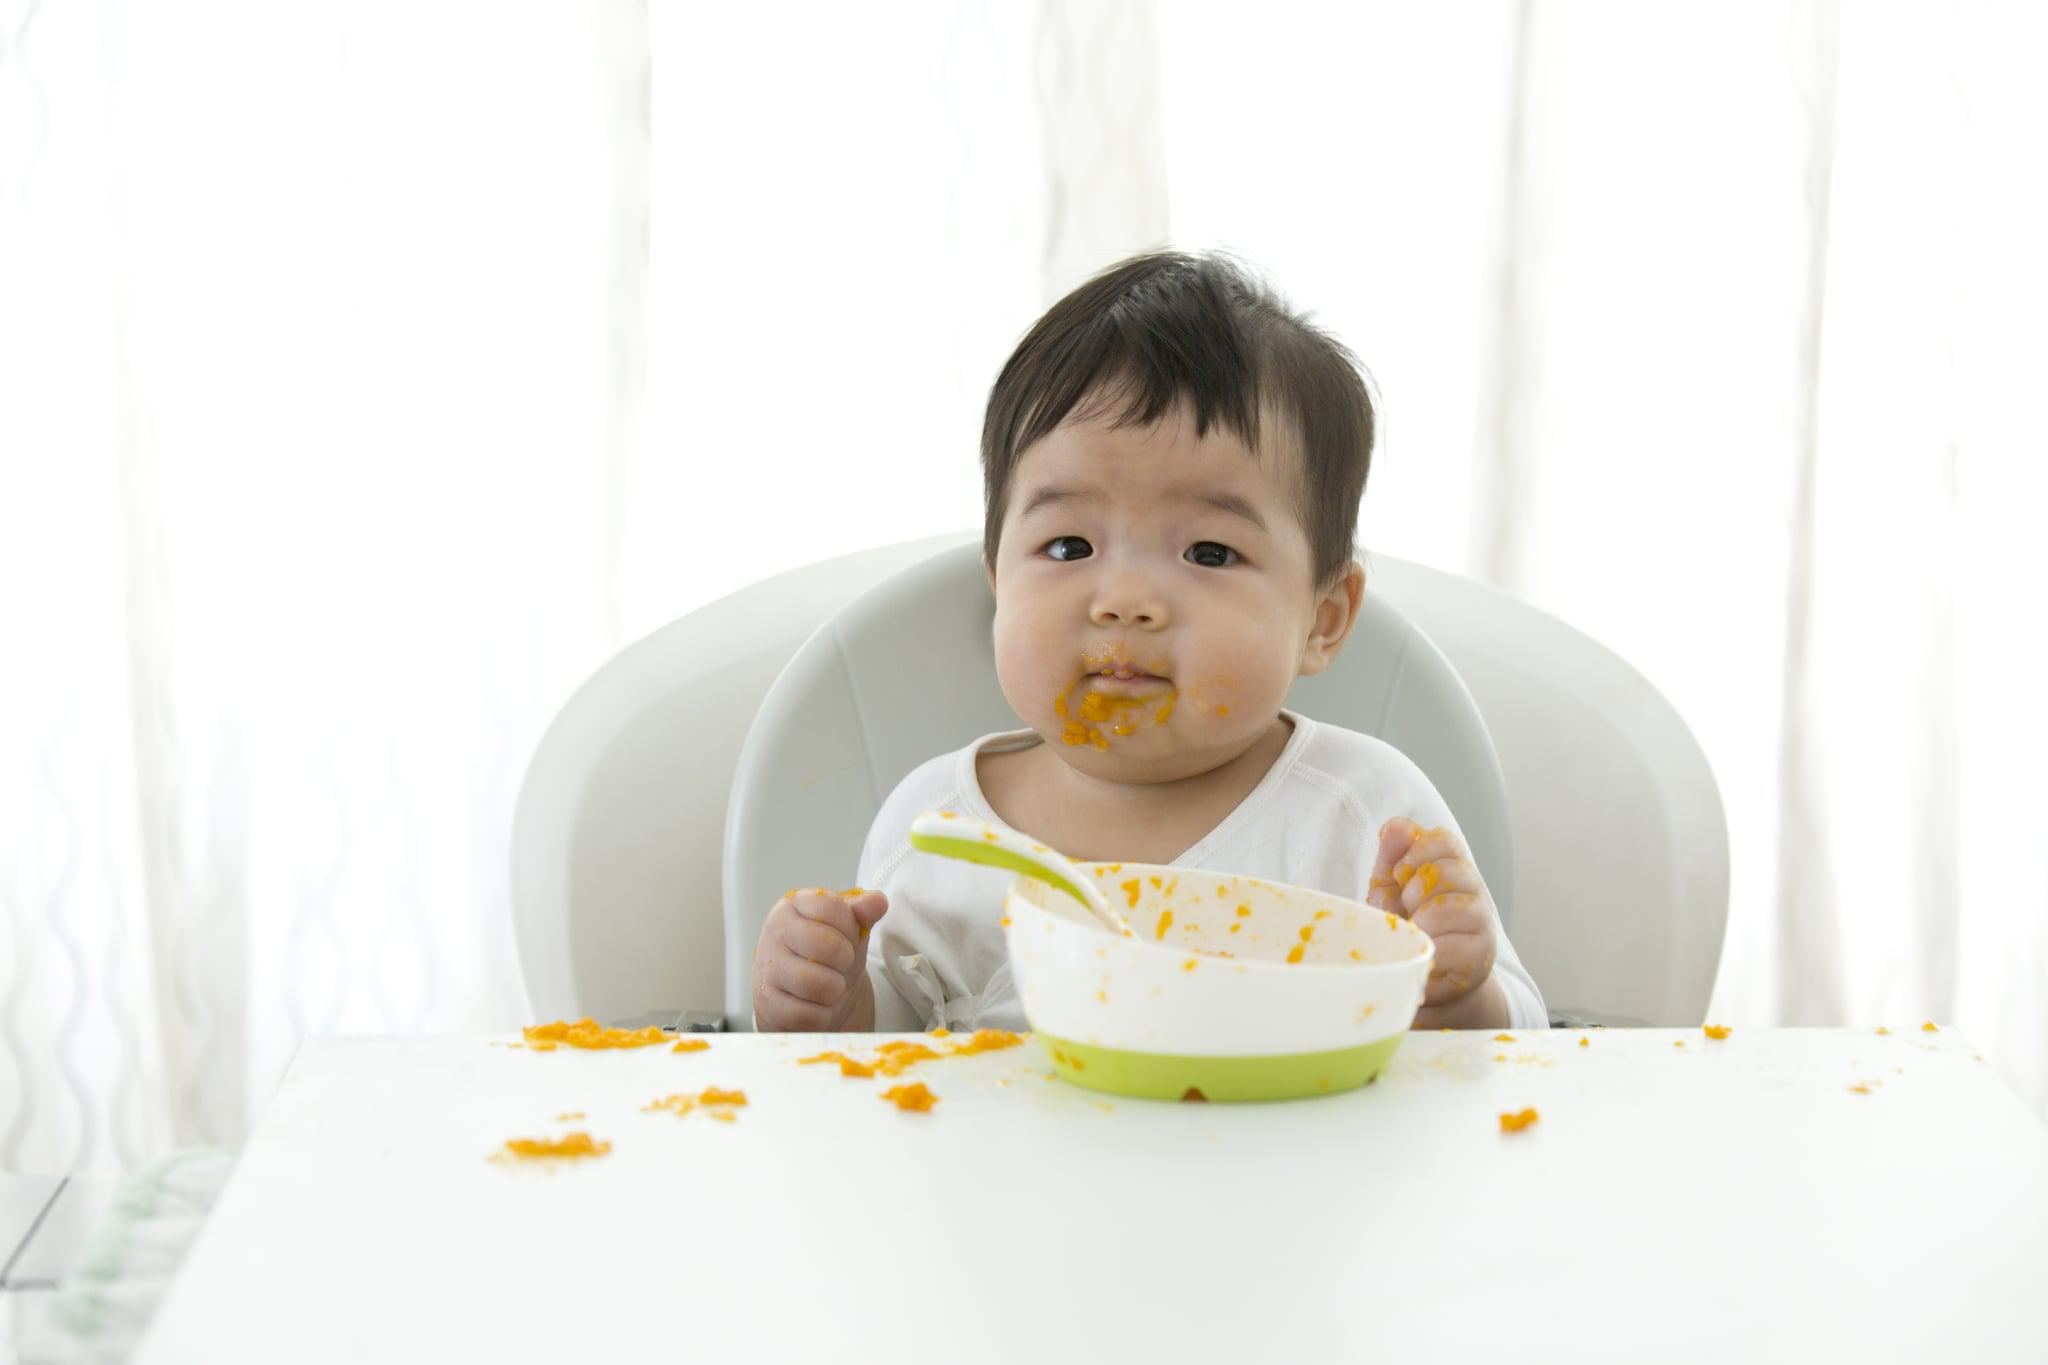 Asian baby learning self feeding on white background.